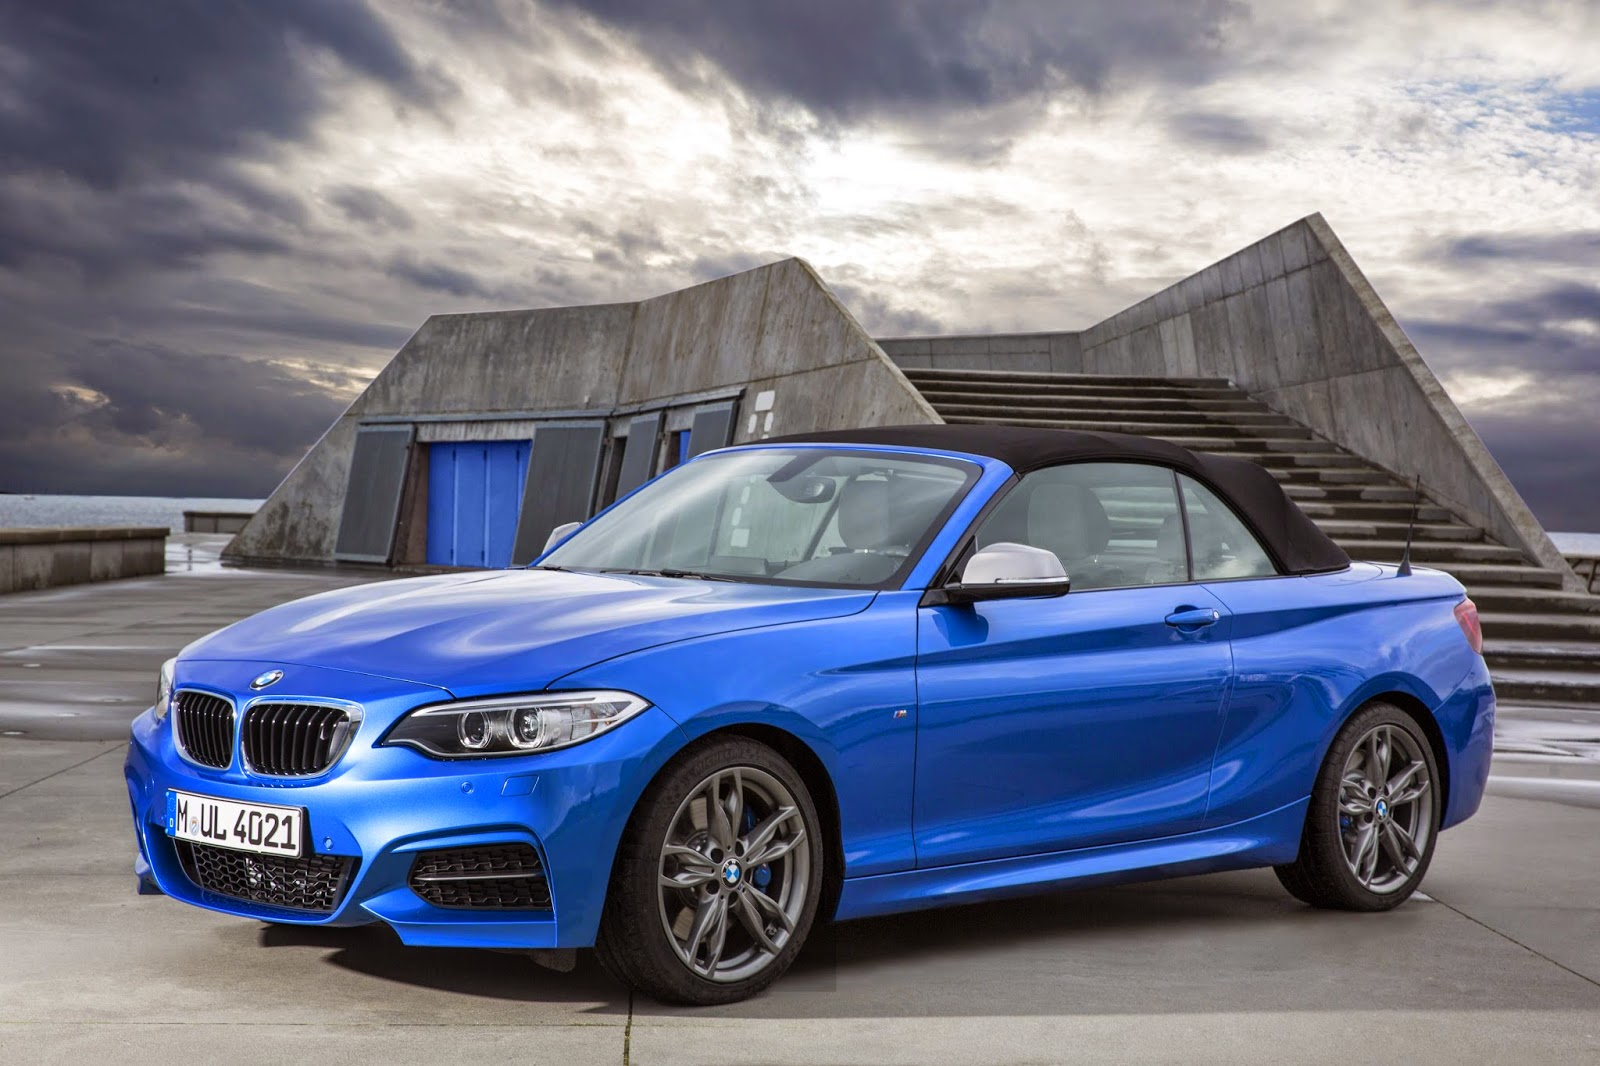 BMW M235i Convertible roof up